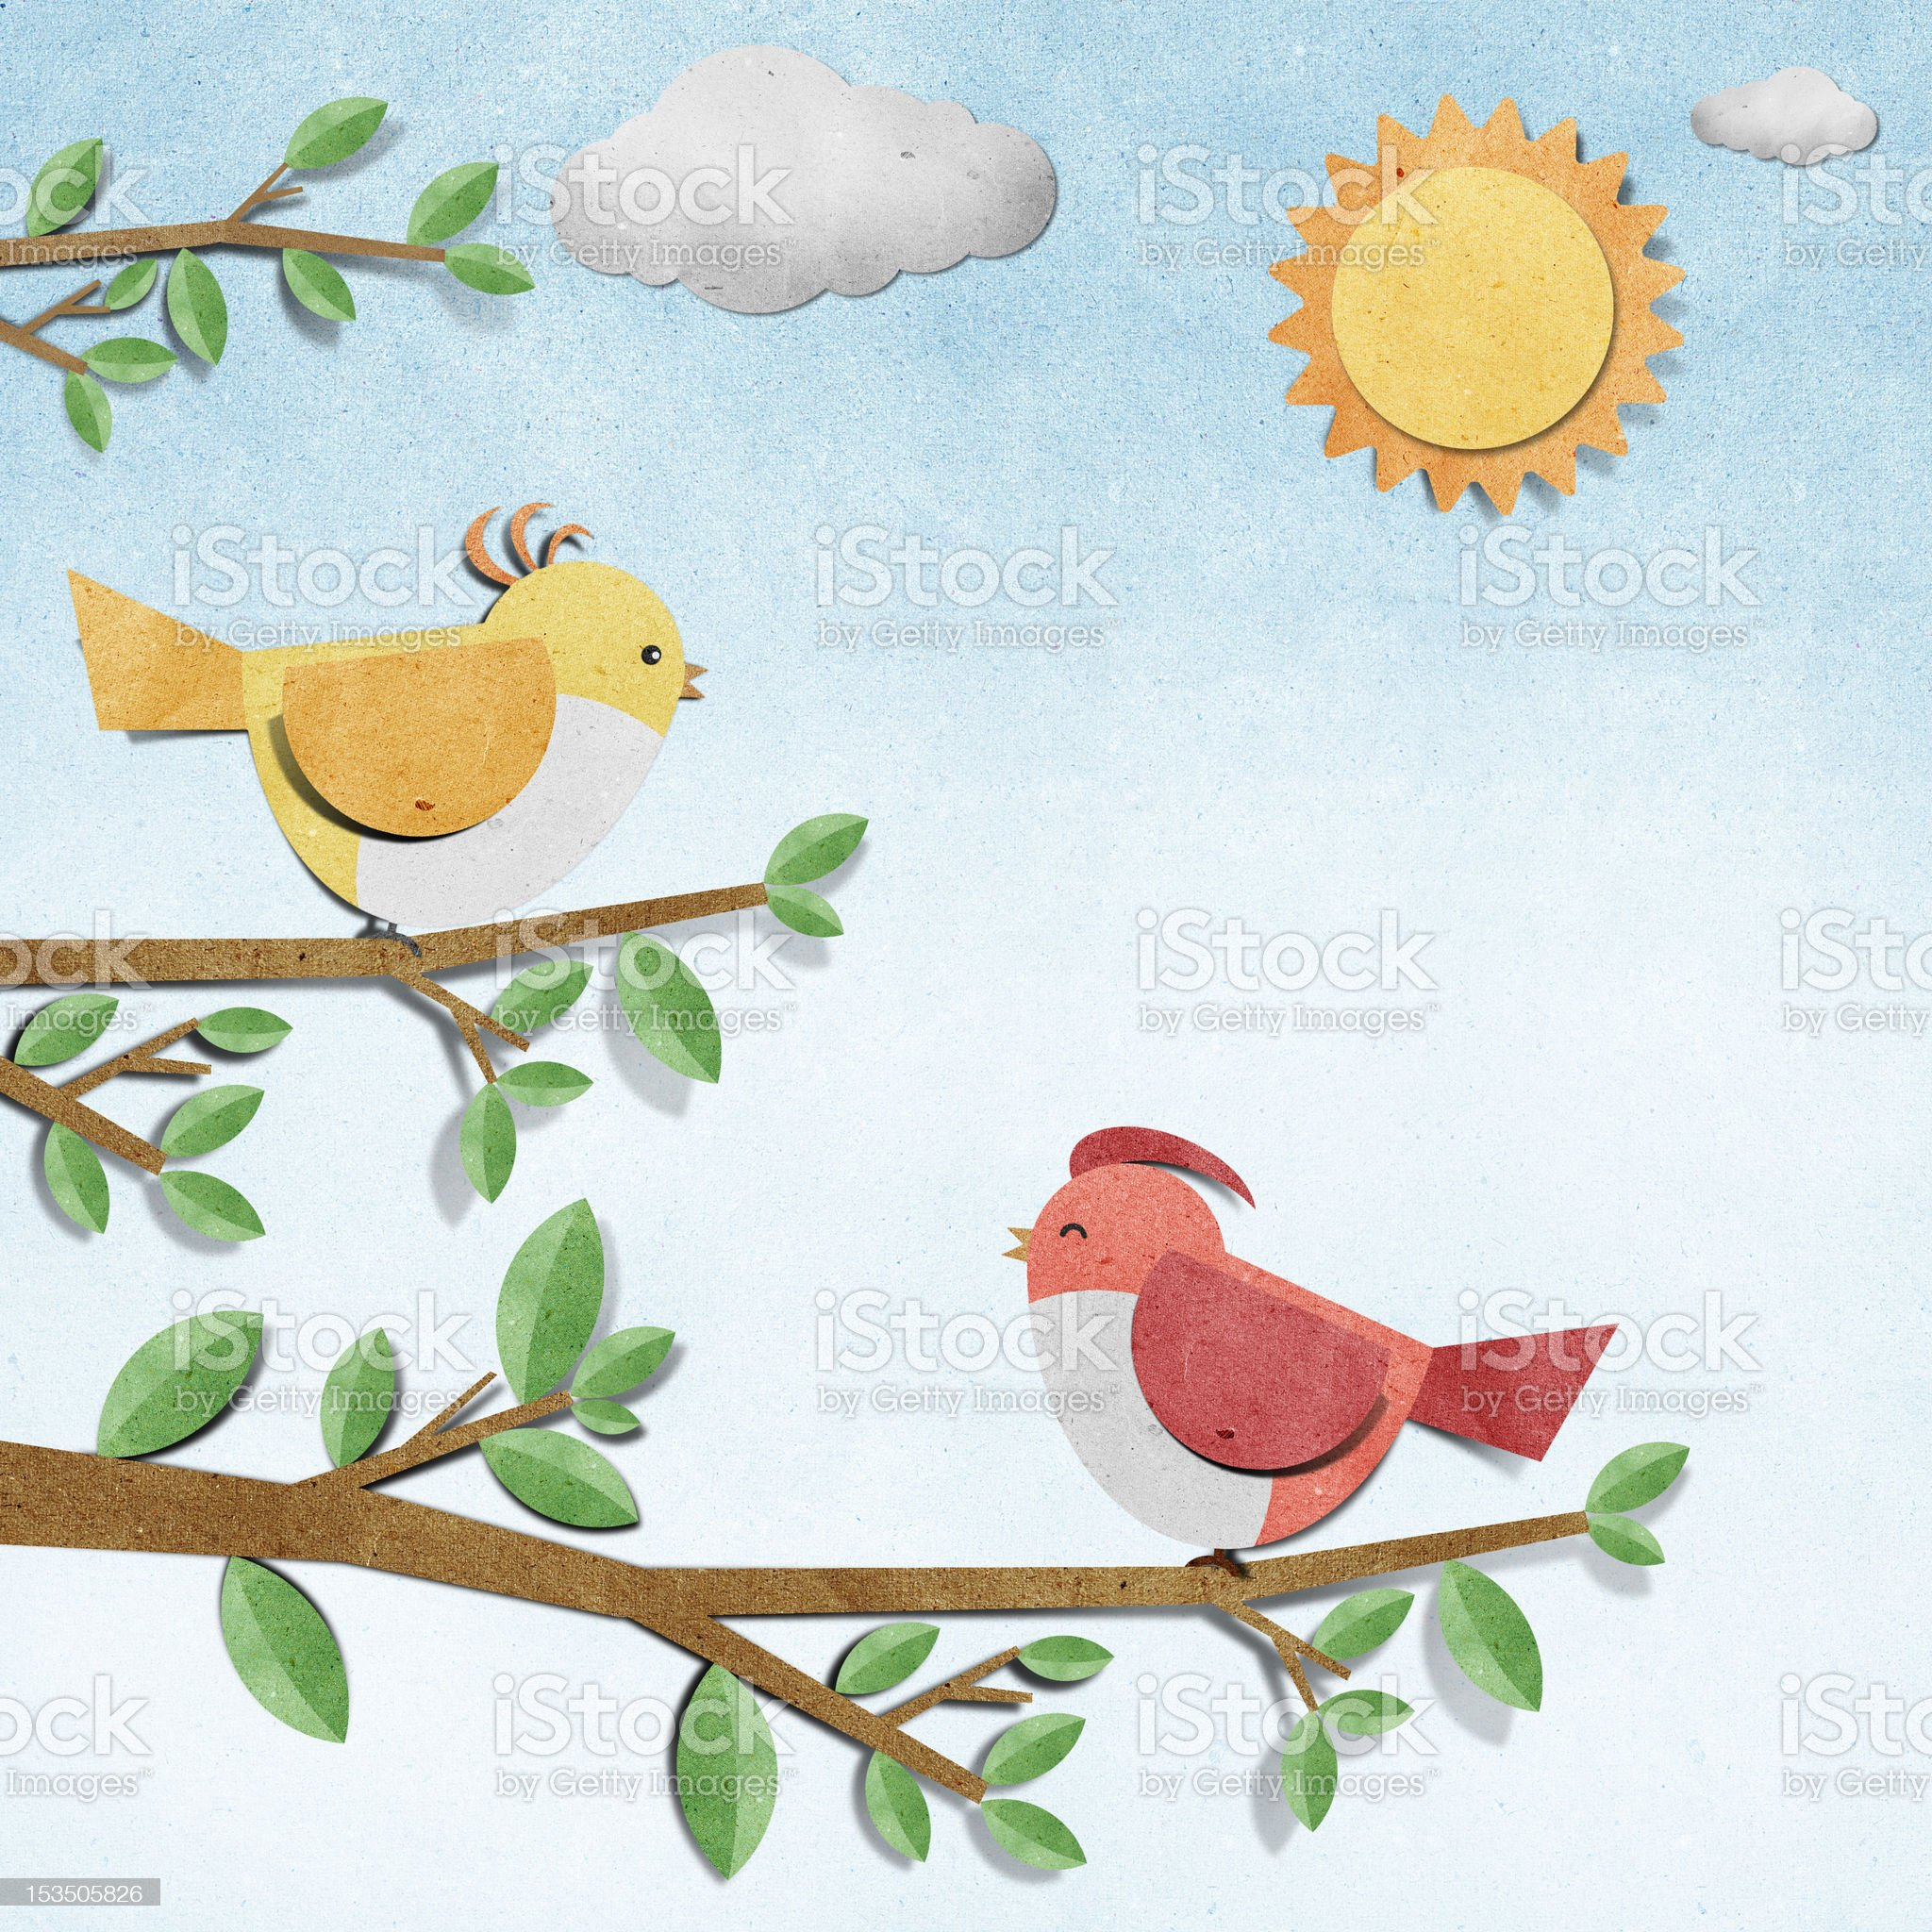 bird recycled paper craft royalty-free stock vector art